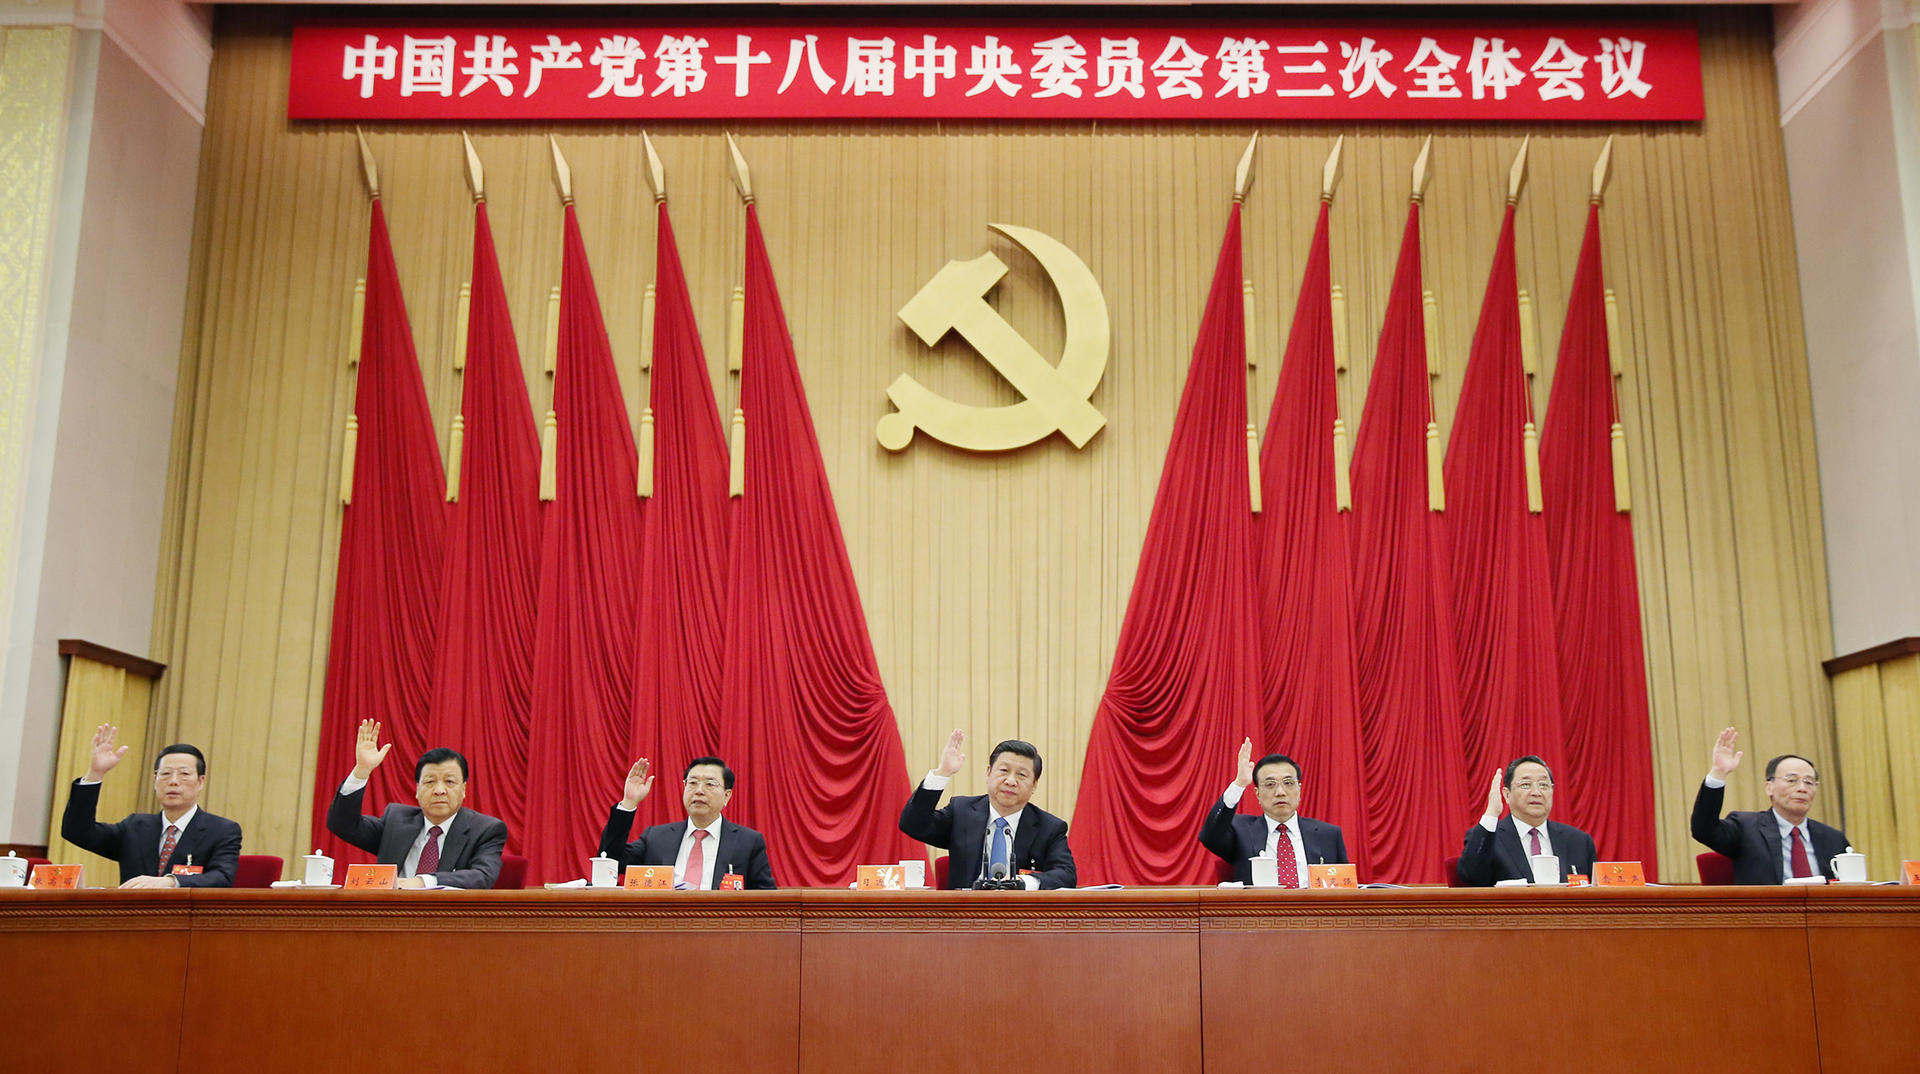 CHINA-BEIJING-18TH CPC CENTRAL COMMITTEE-THIRD PLENARY SESSION (CN)